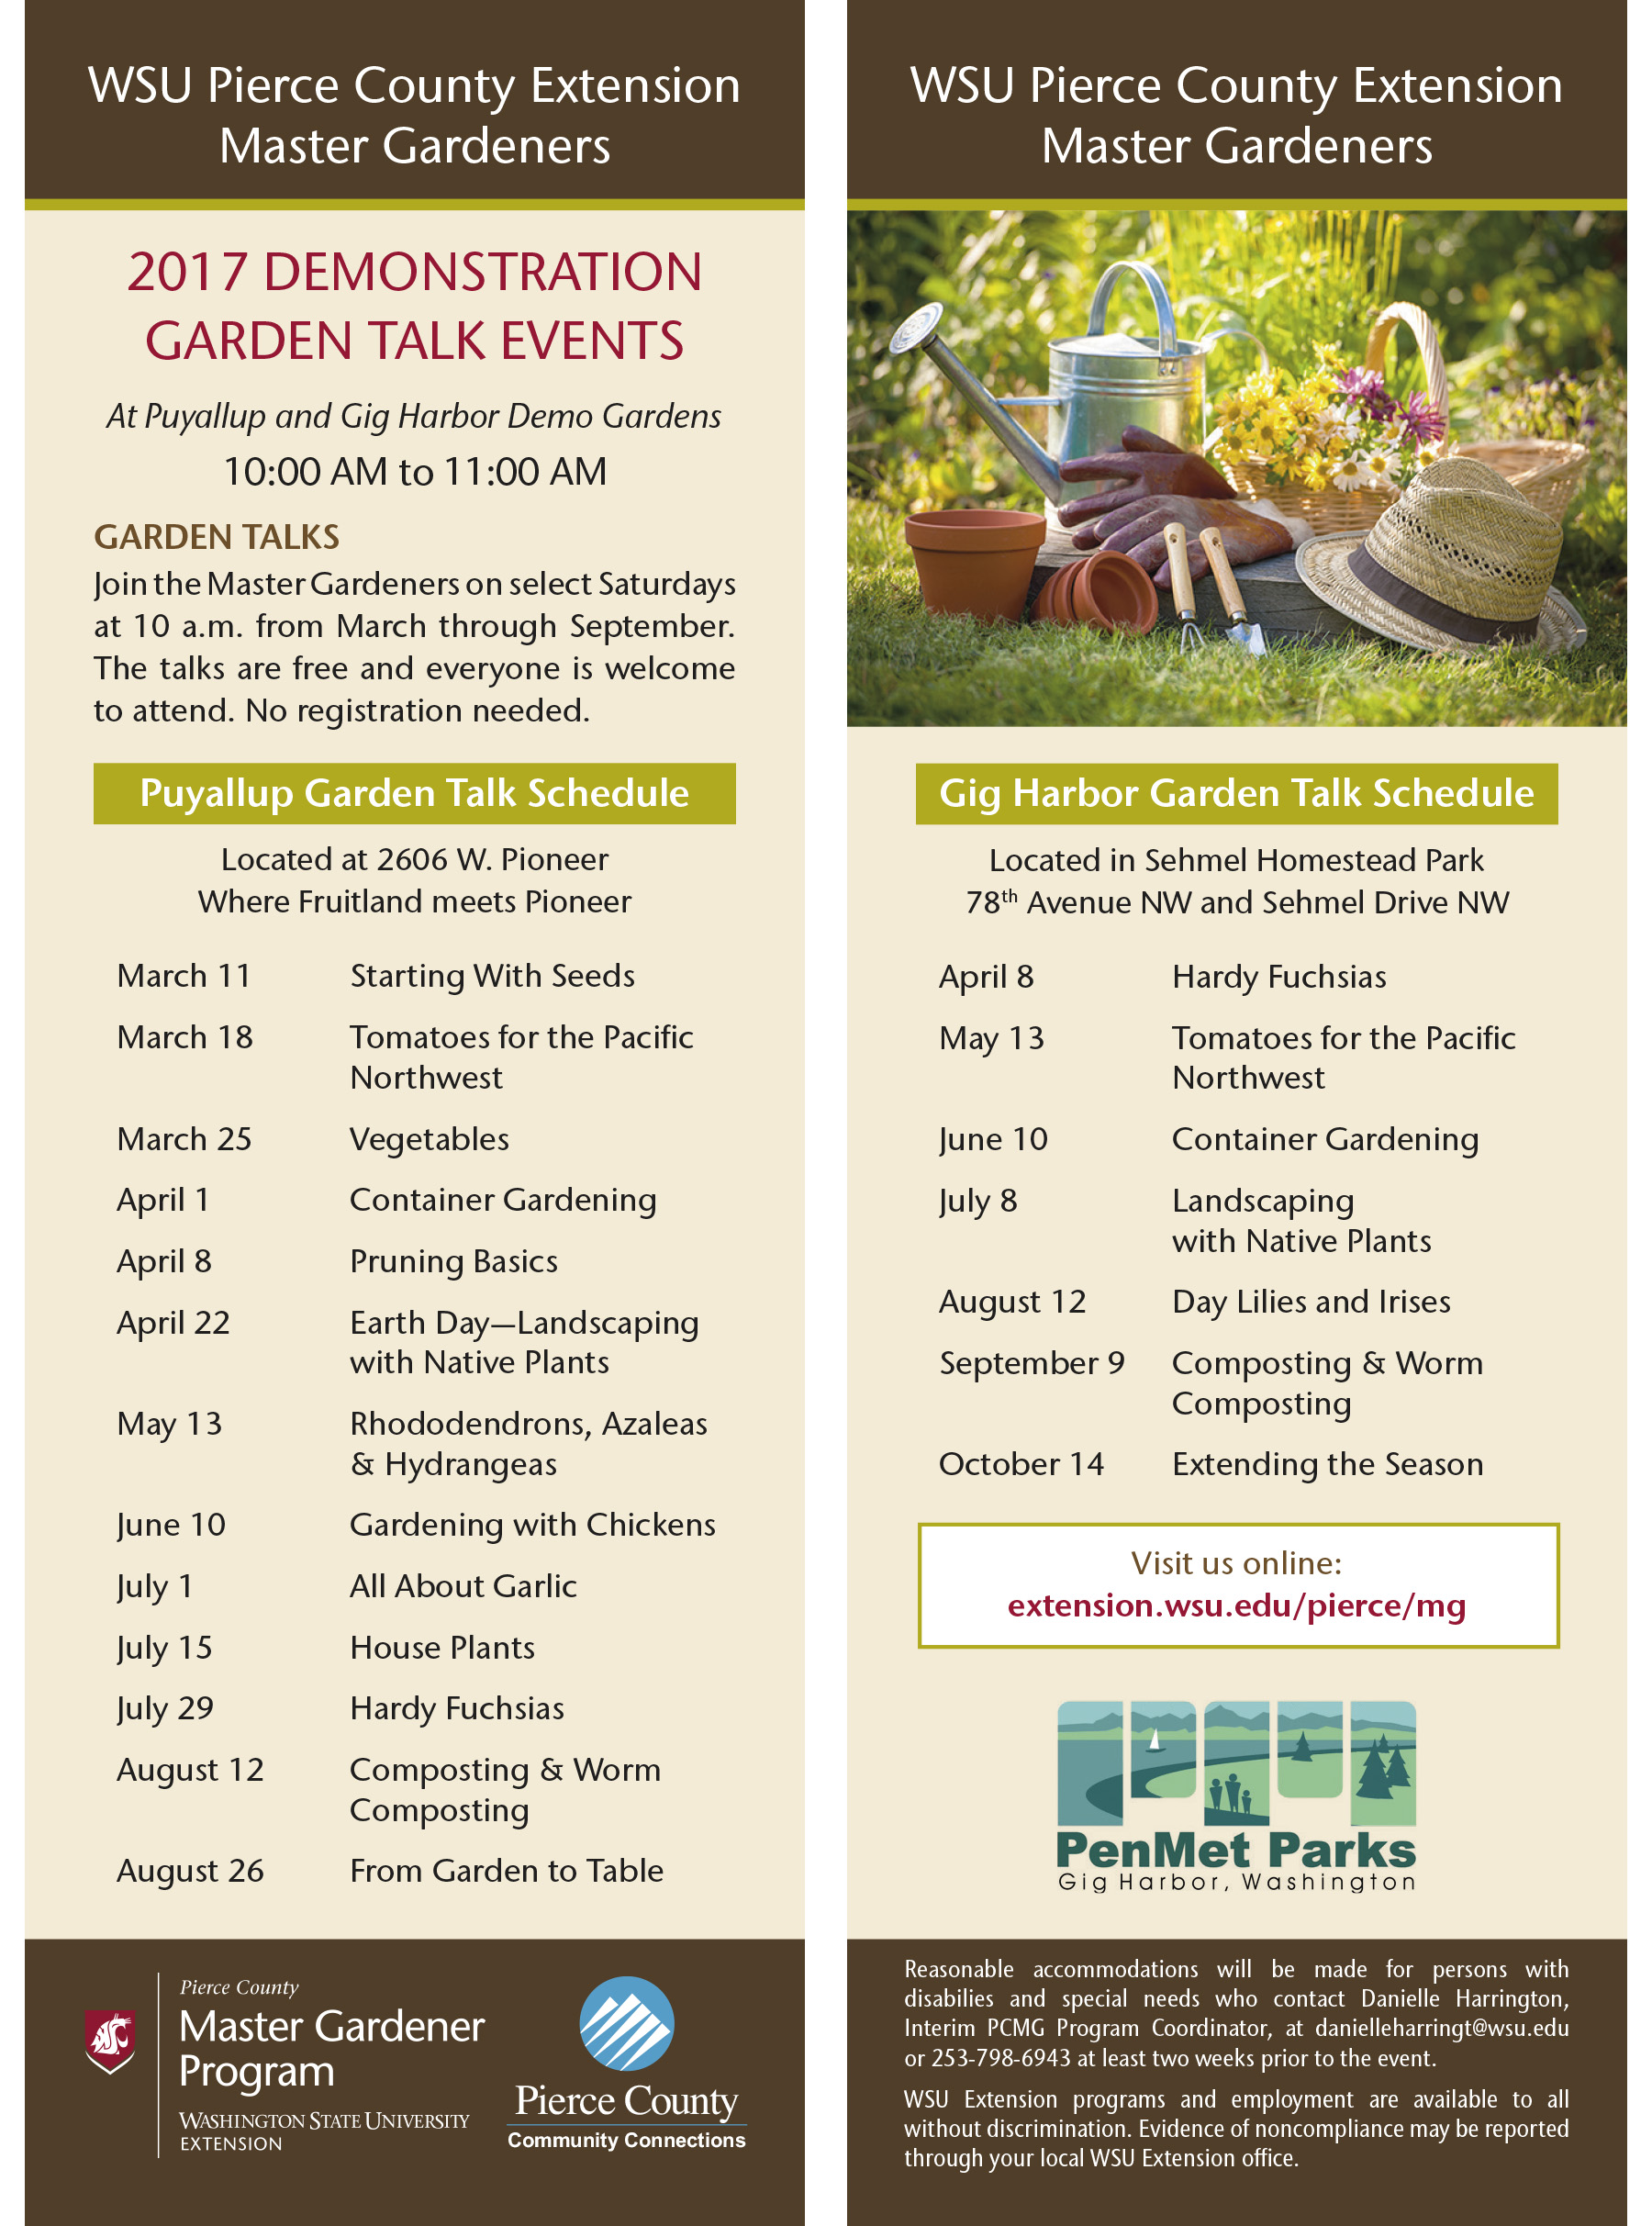 Puyallup Garden Talk With Master Gardeners House Plants Pierce